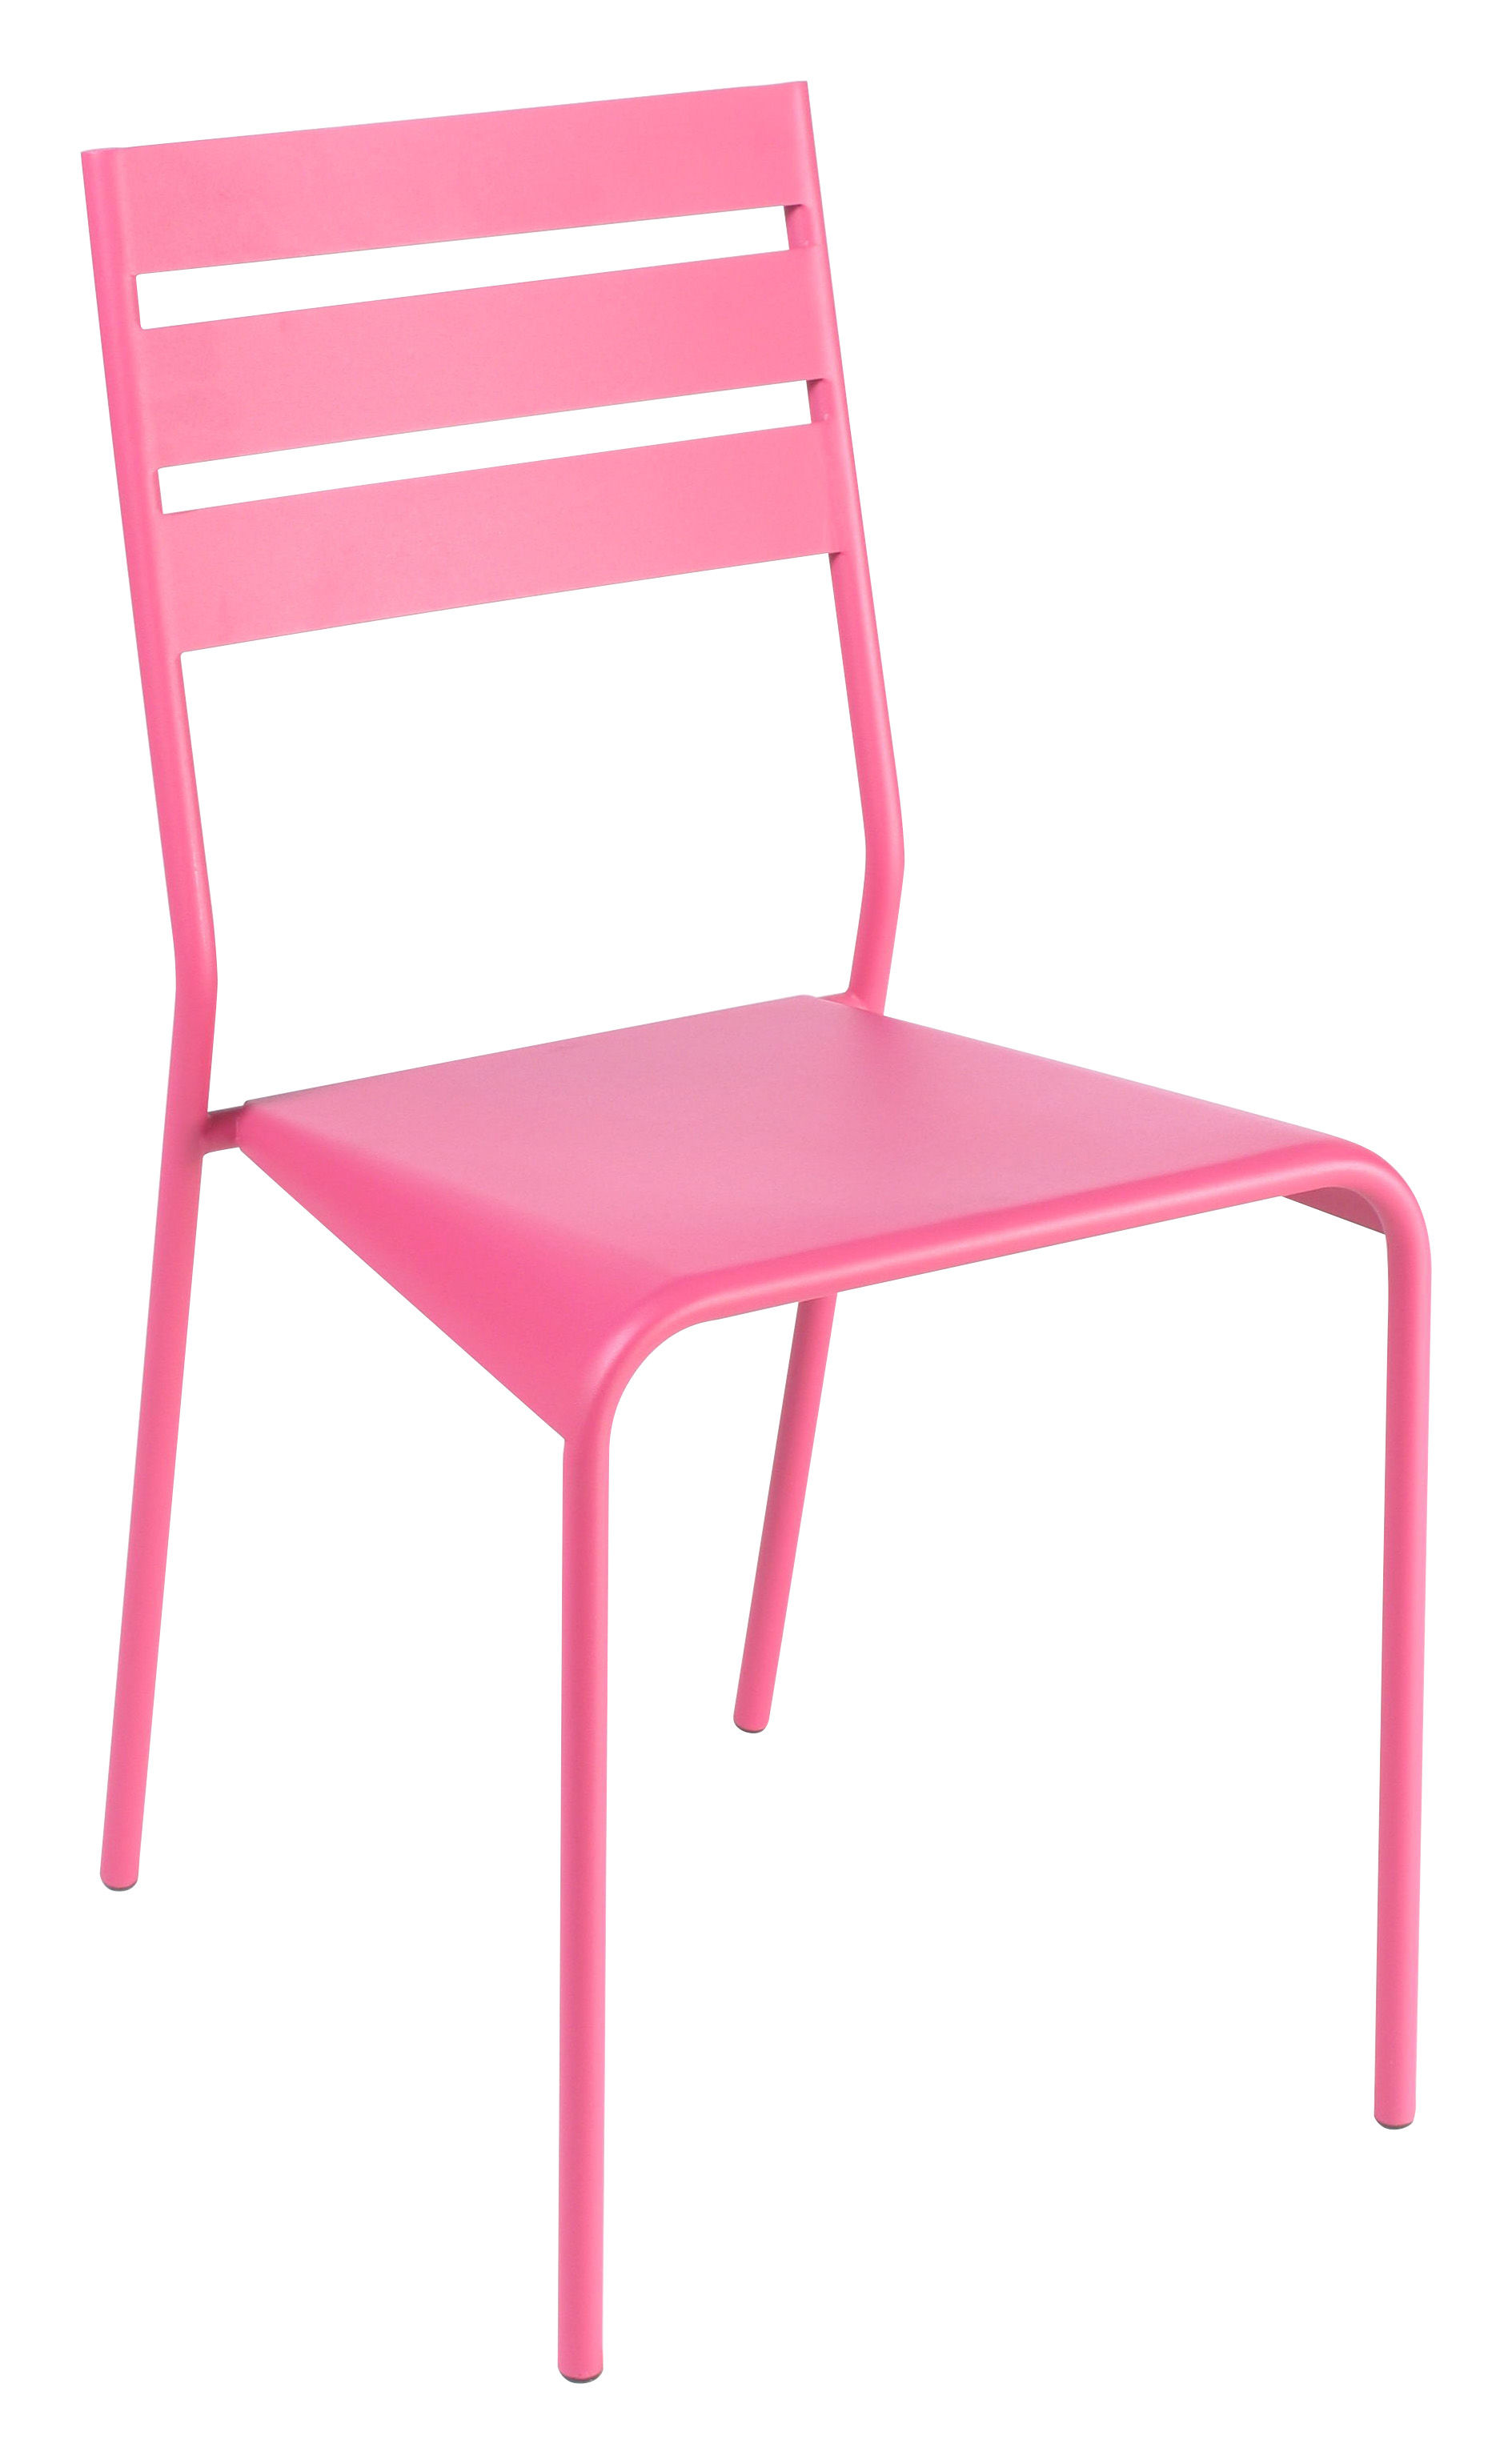 Chaise empilable facto fuchsia fermob for Chaise empilable